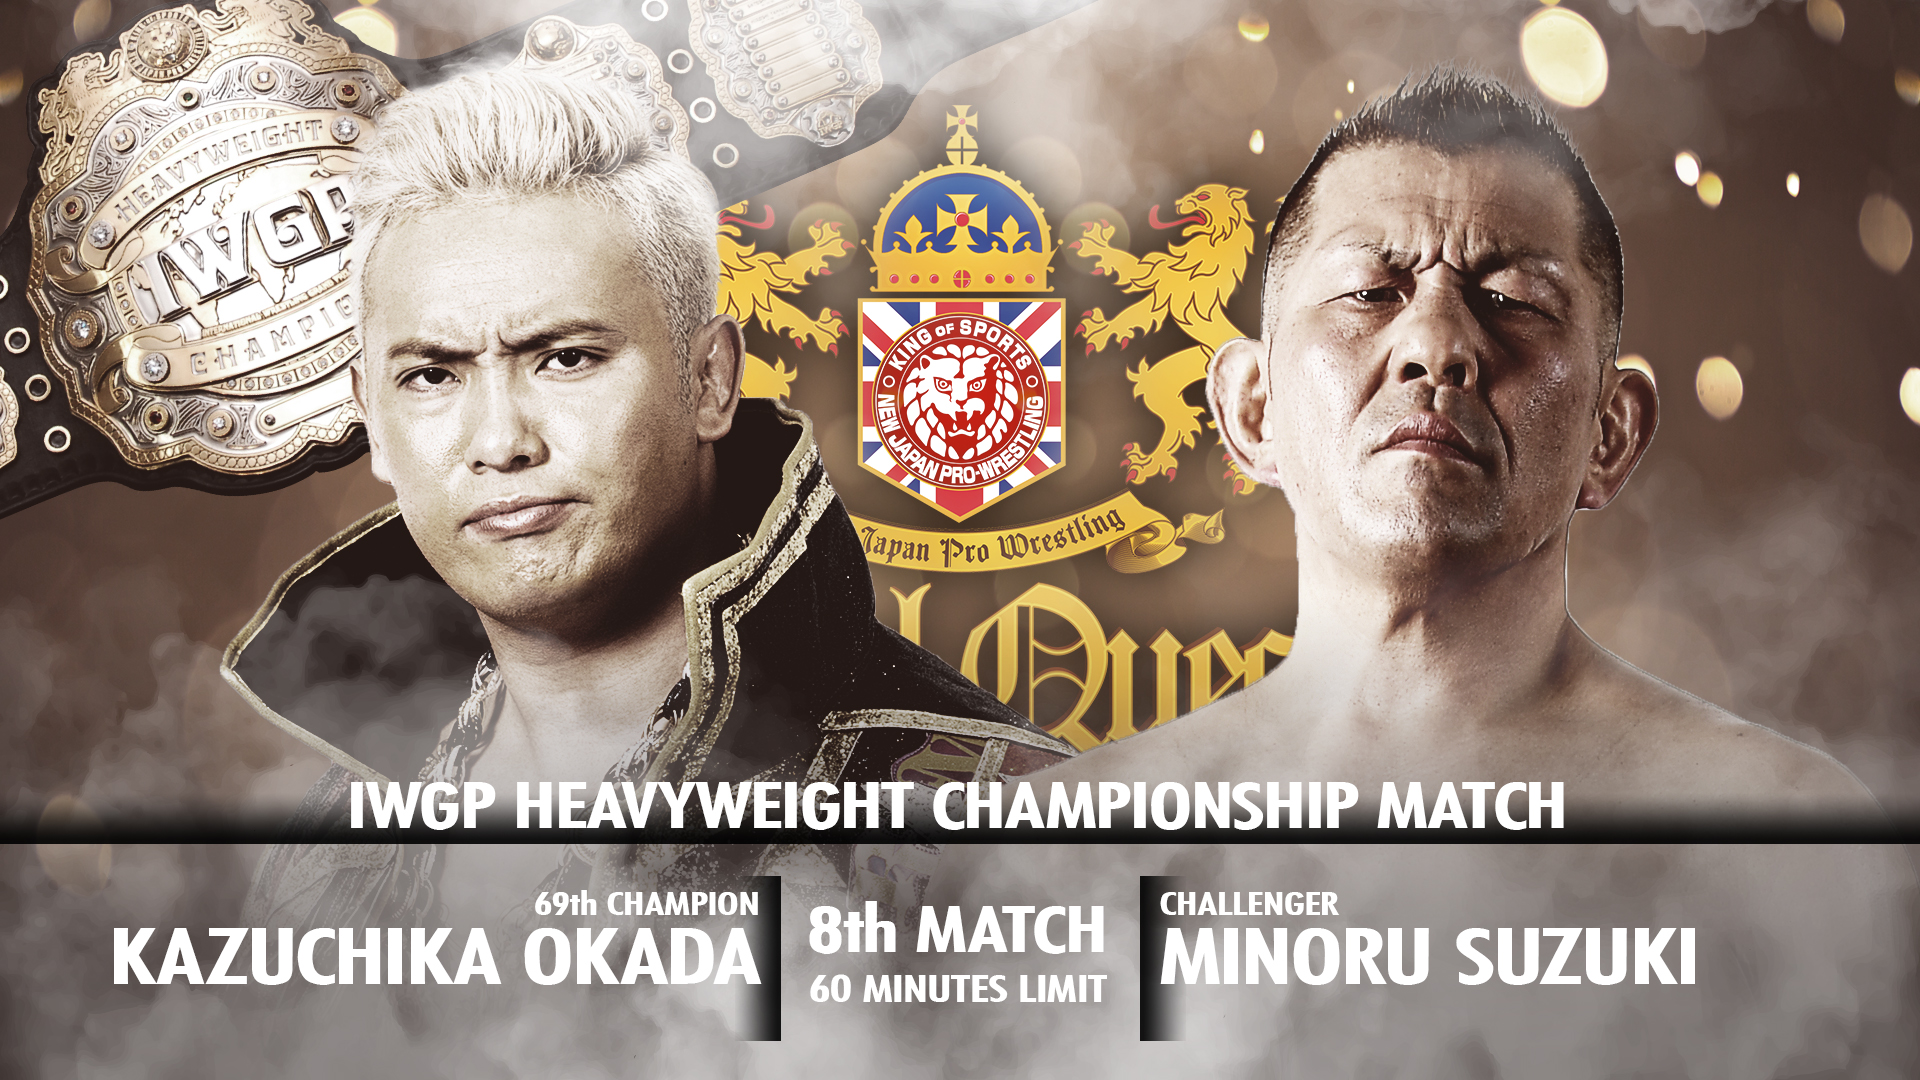 Four title matches highlight a spectacular card for Royal